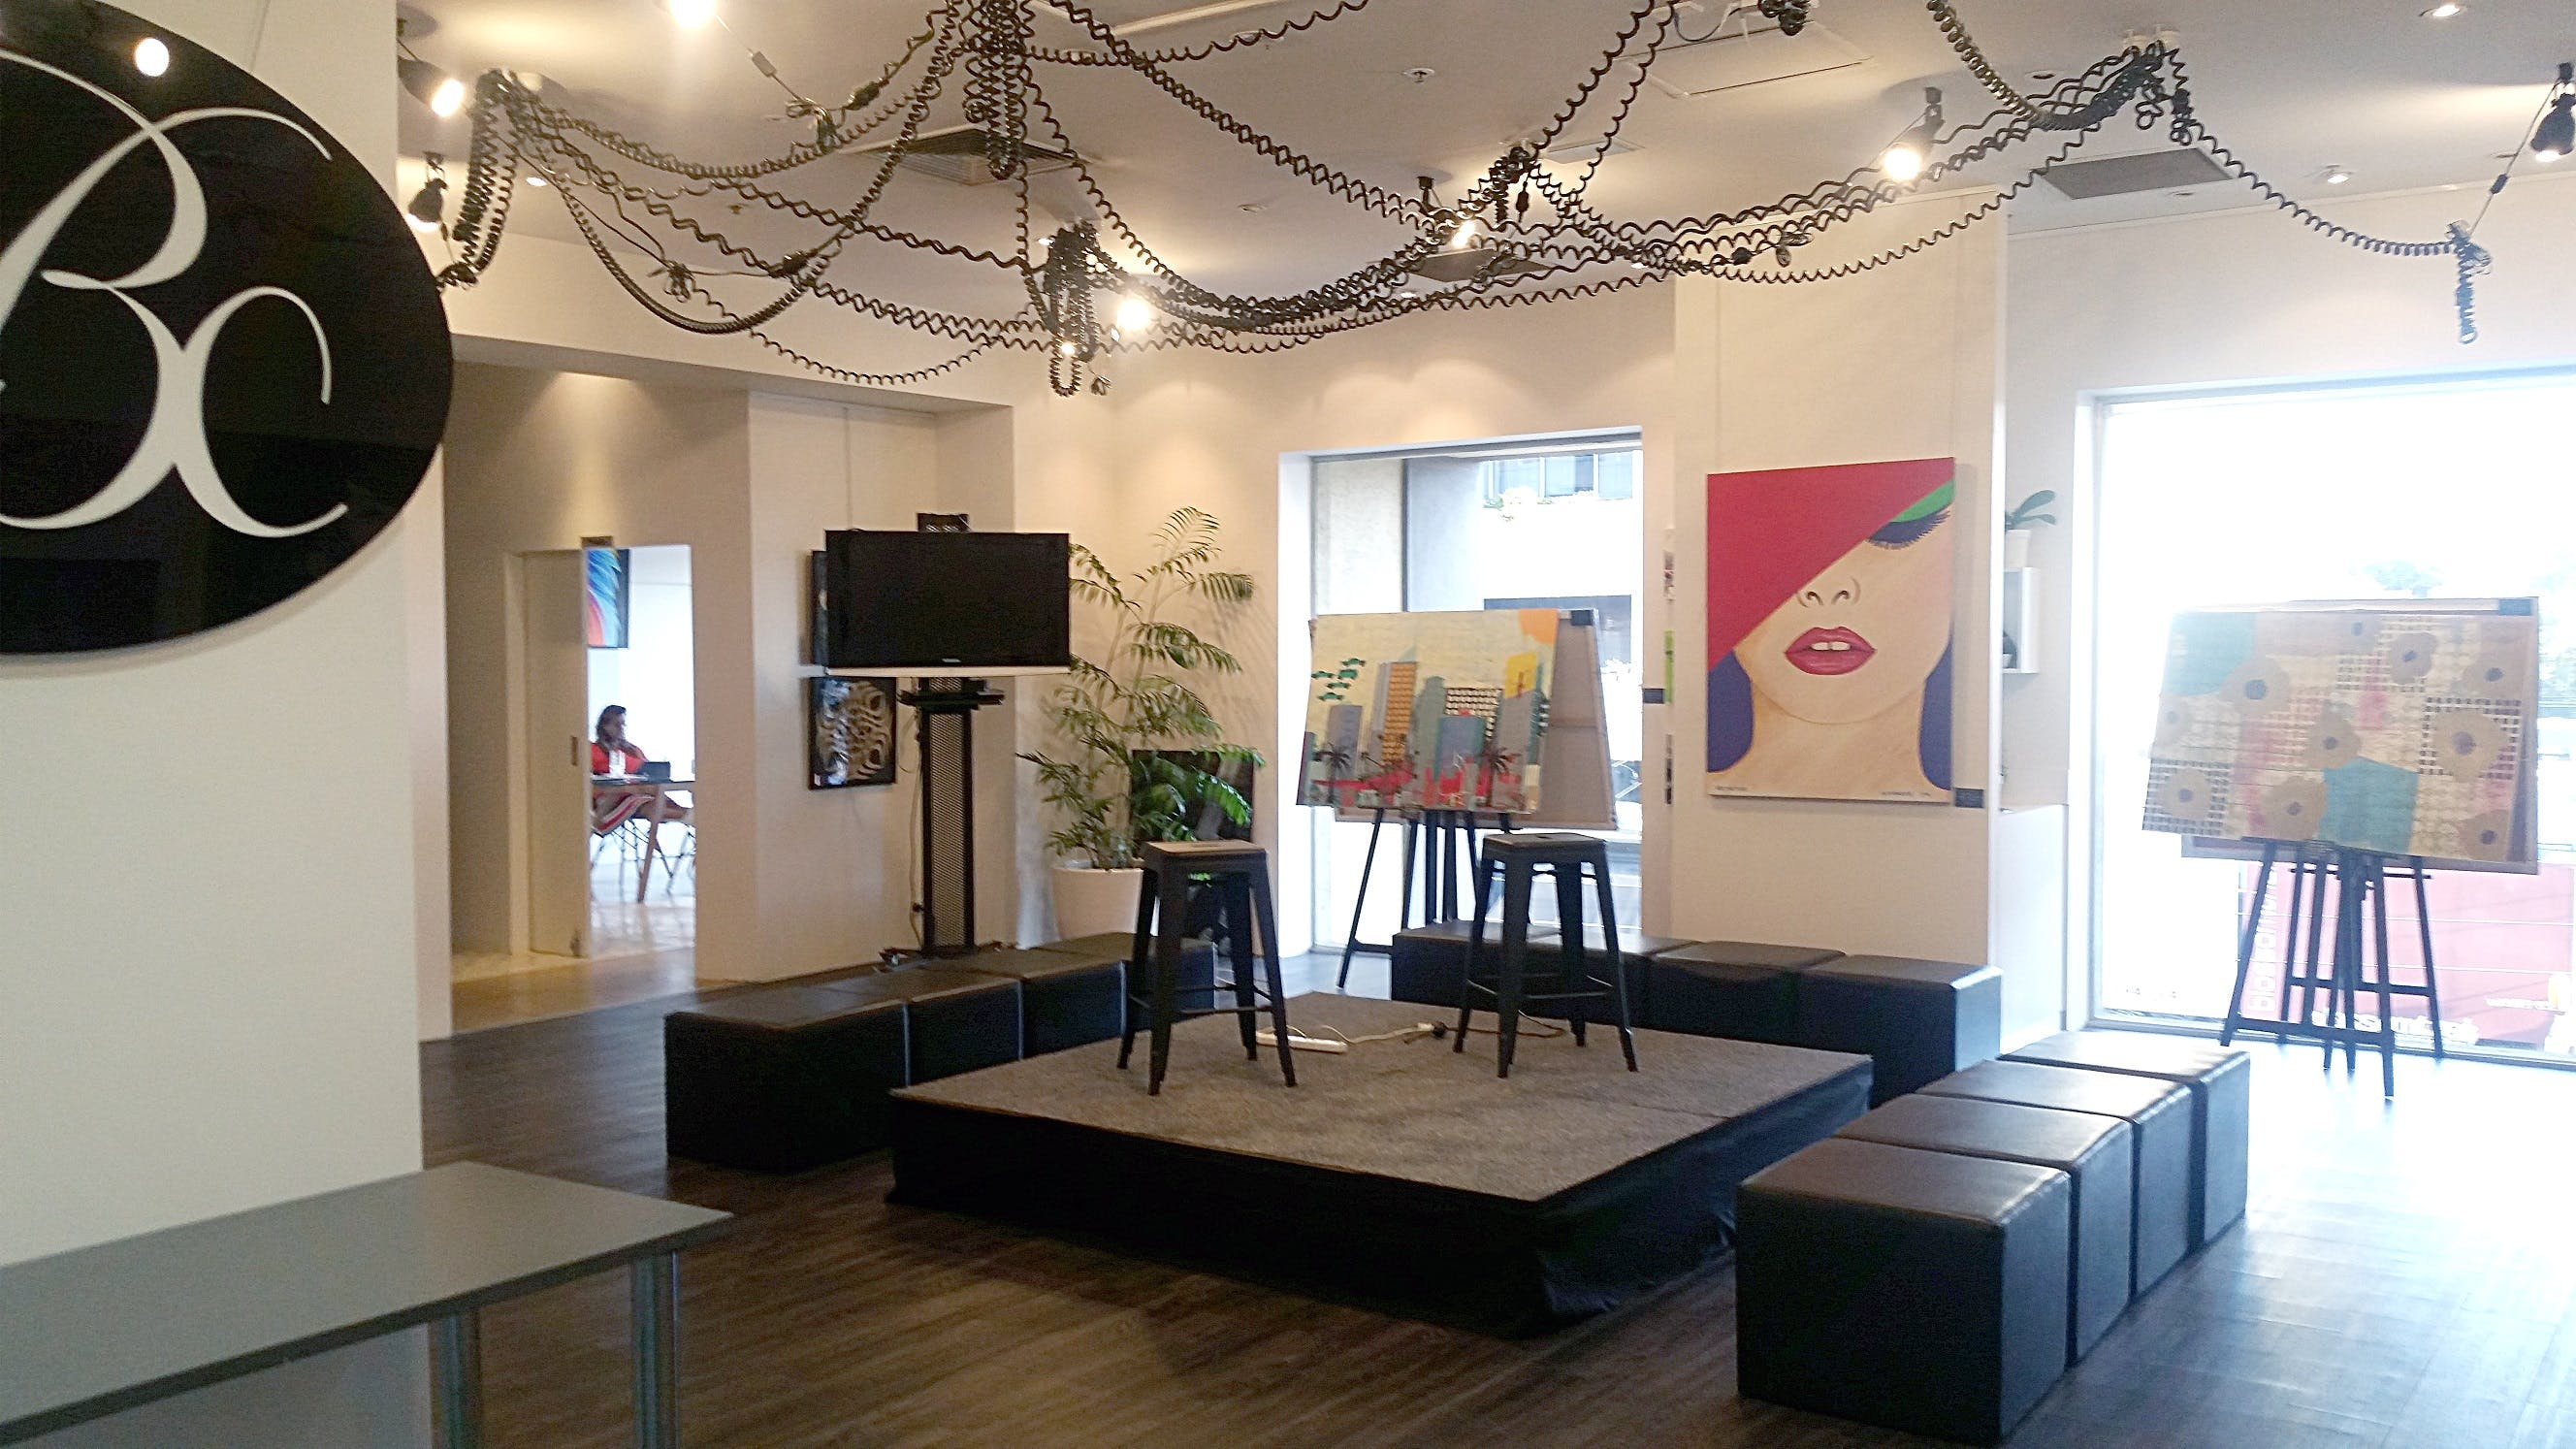 Art Gallery / Events / Retail or Fashion Pop-Up Space, multi-use area at Blush Creative, image 1